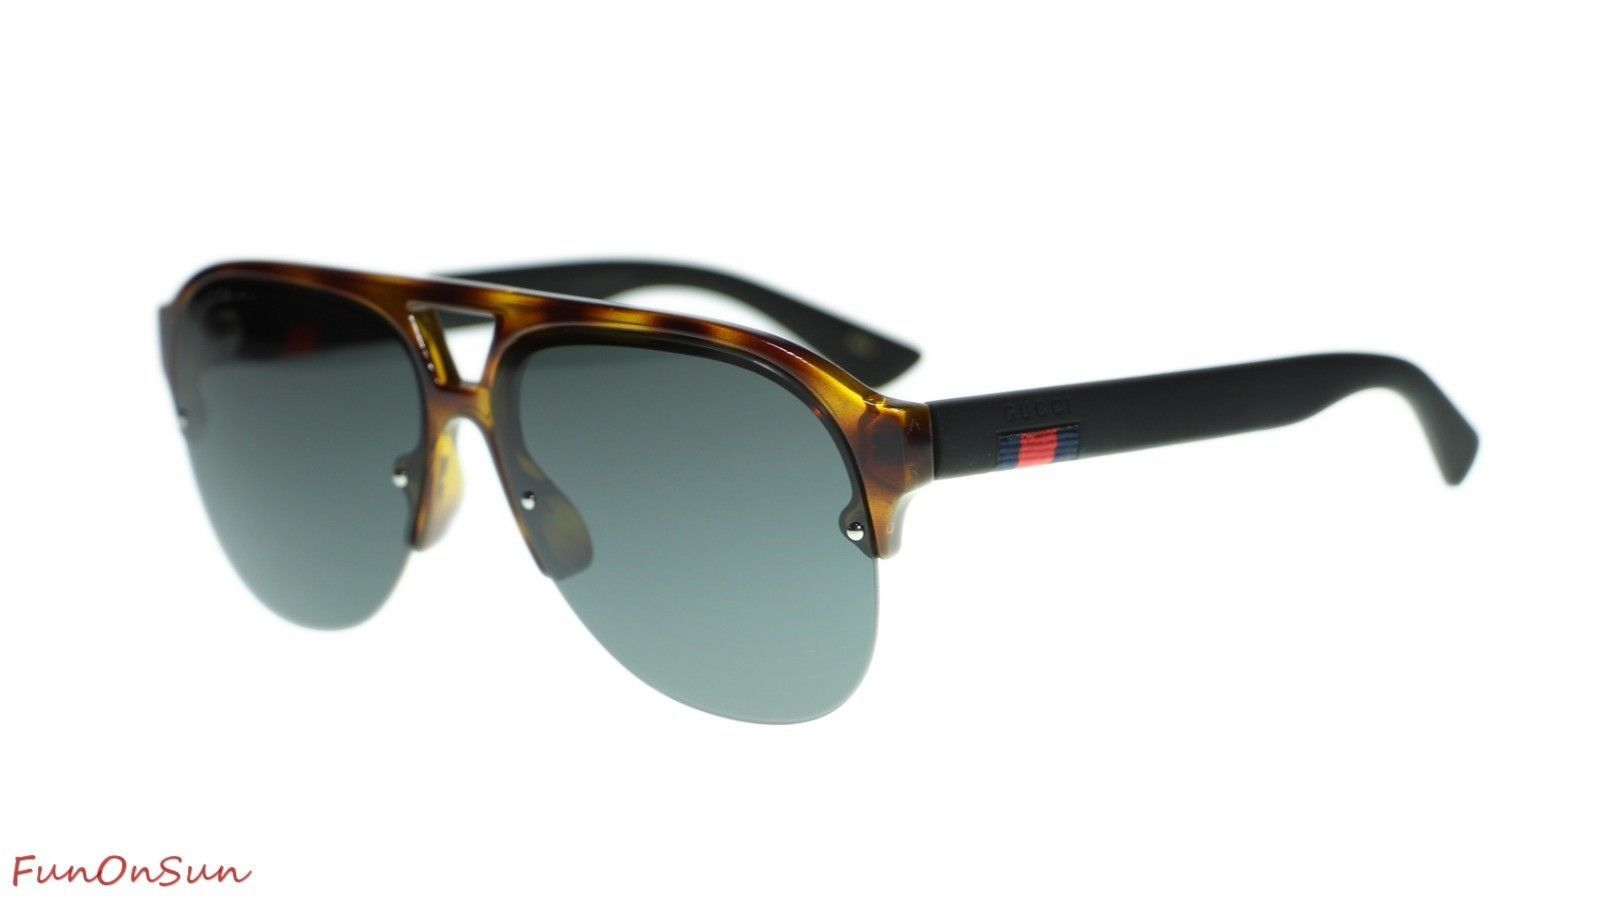 96e88c0eee8 NEW Gucci Men Sunglasses GG0170S 003 Havana and 35 similar items. 10